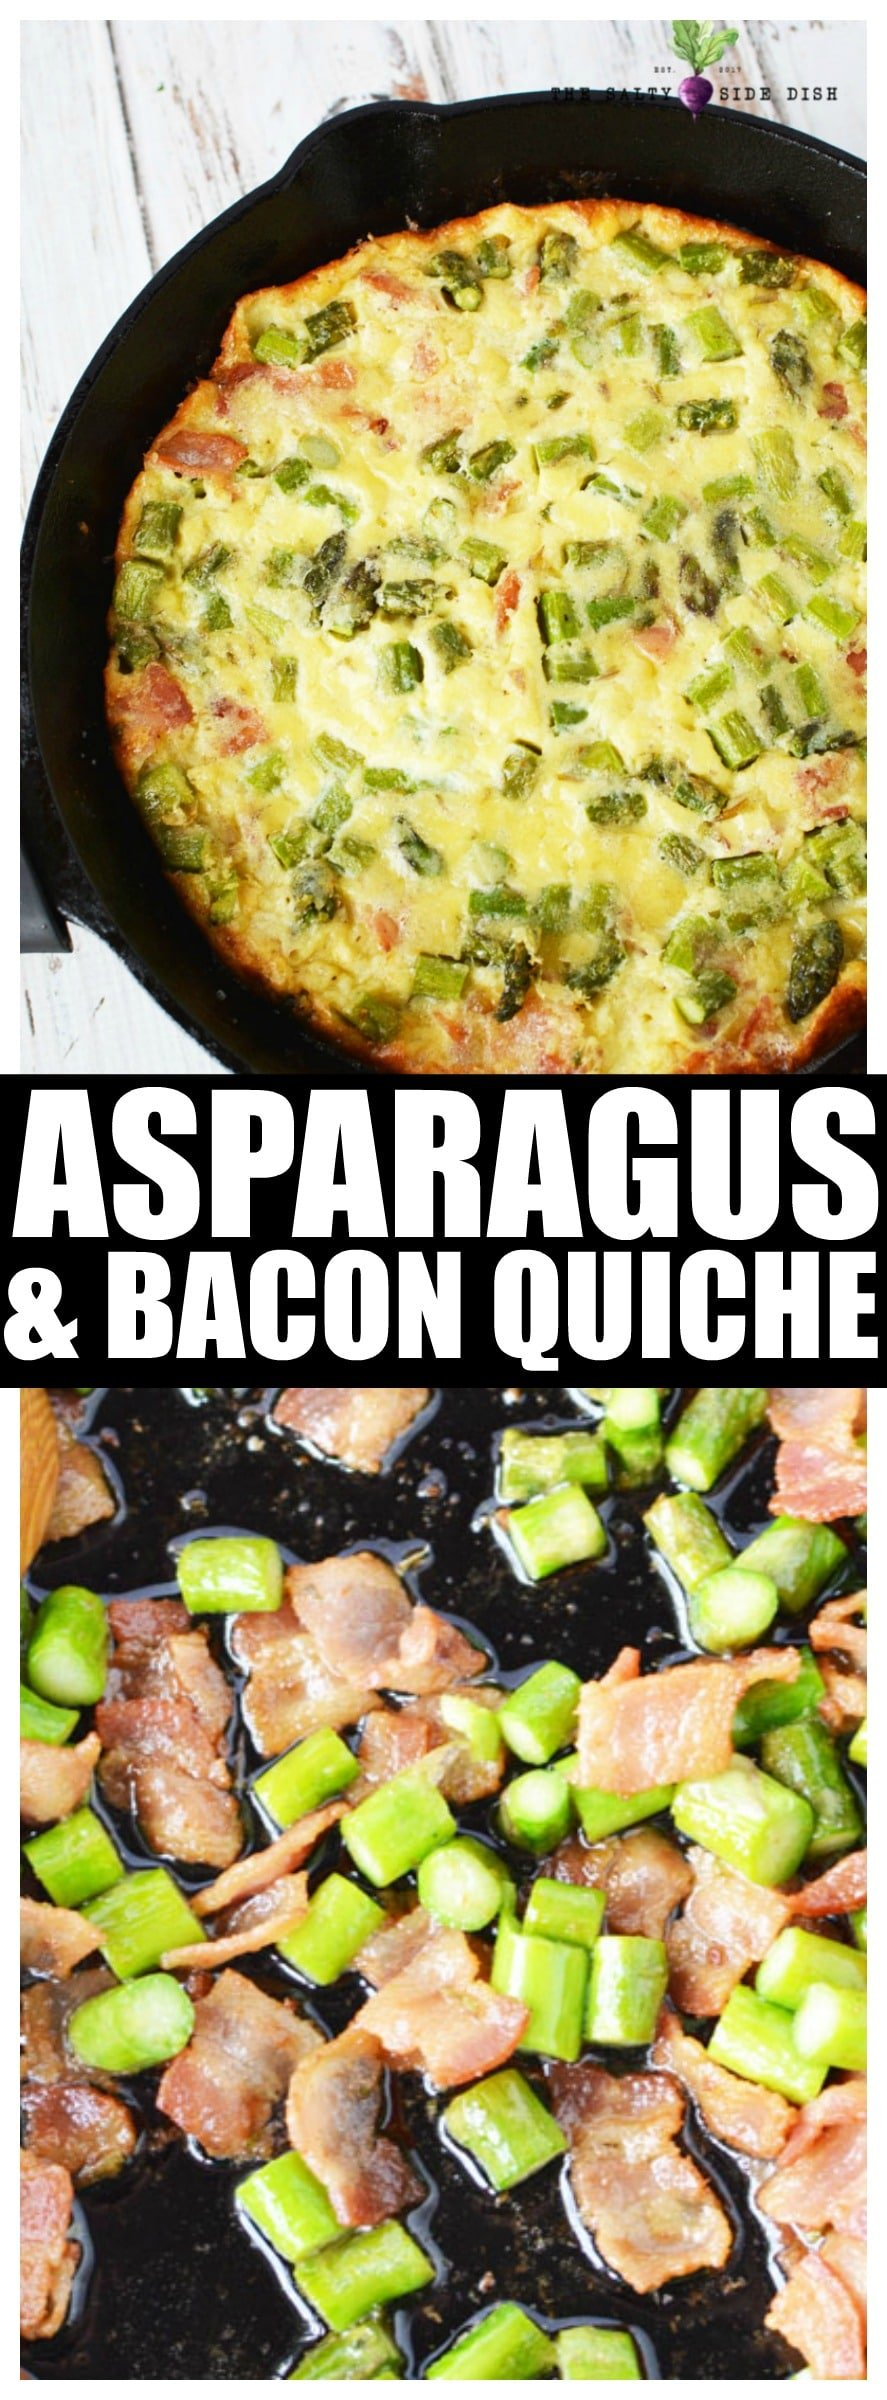 Asparagus Quiche with Bacon is a perfect breakfast side dish #quiche #asparagus #recipe #breakfast #sidedish #saltysidedish